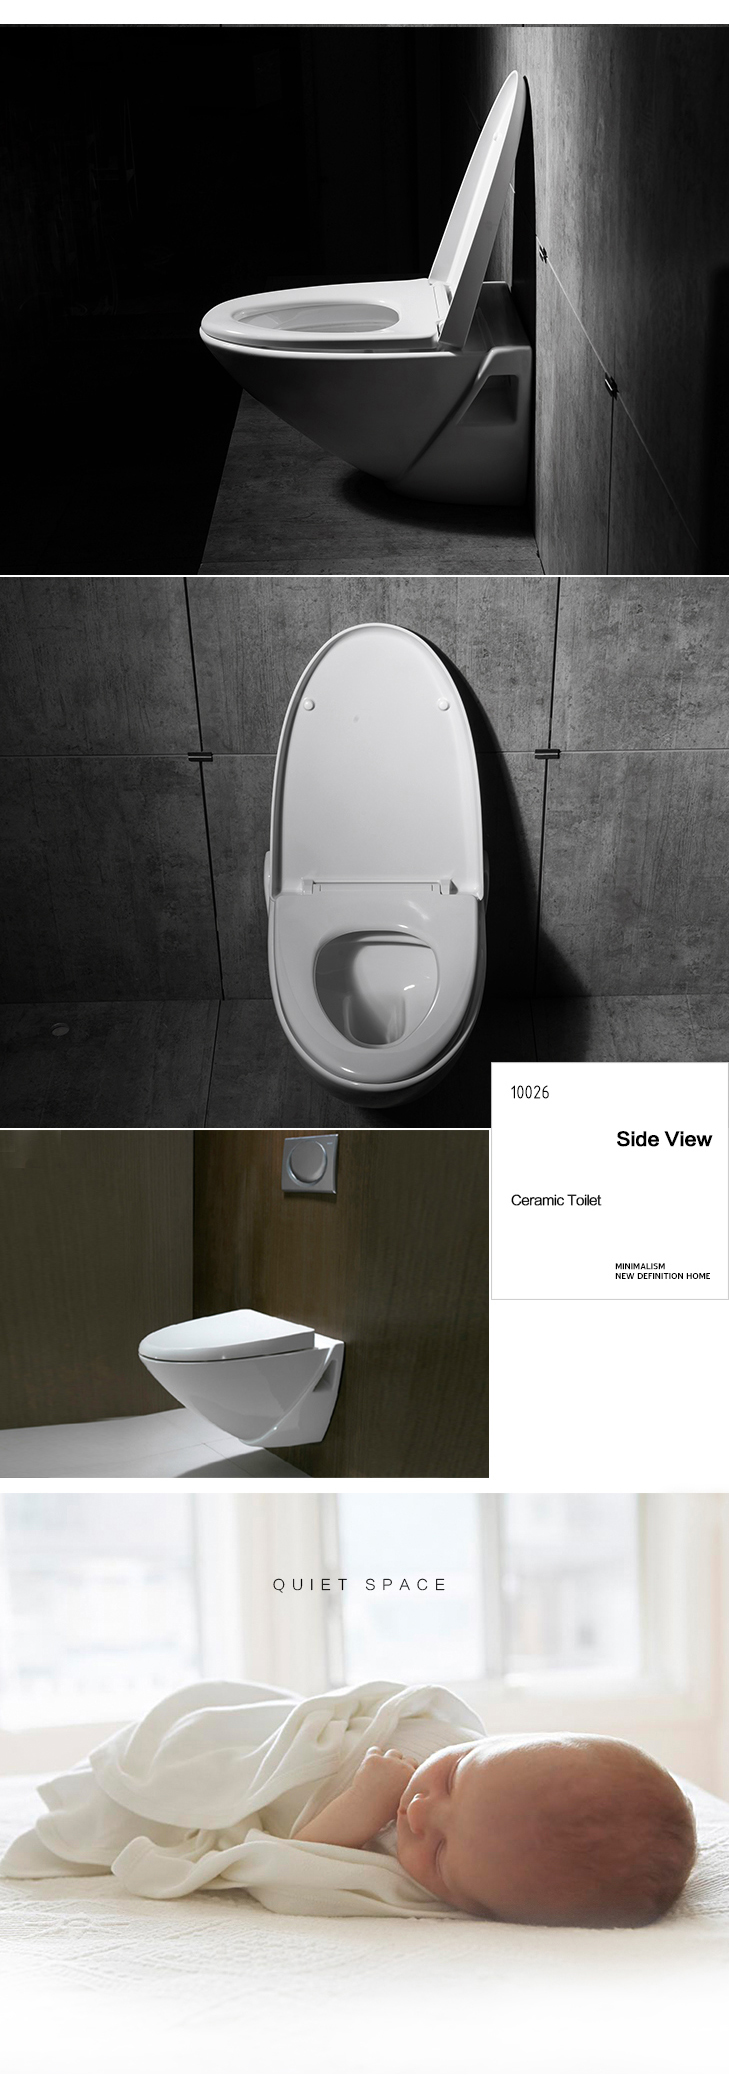 Sanitary Concealed Water Tank Toilet, The Damping Toilet Seat